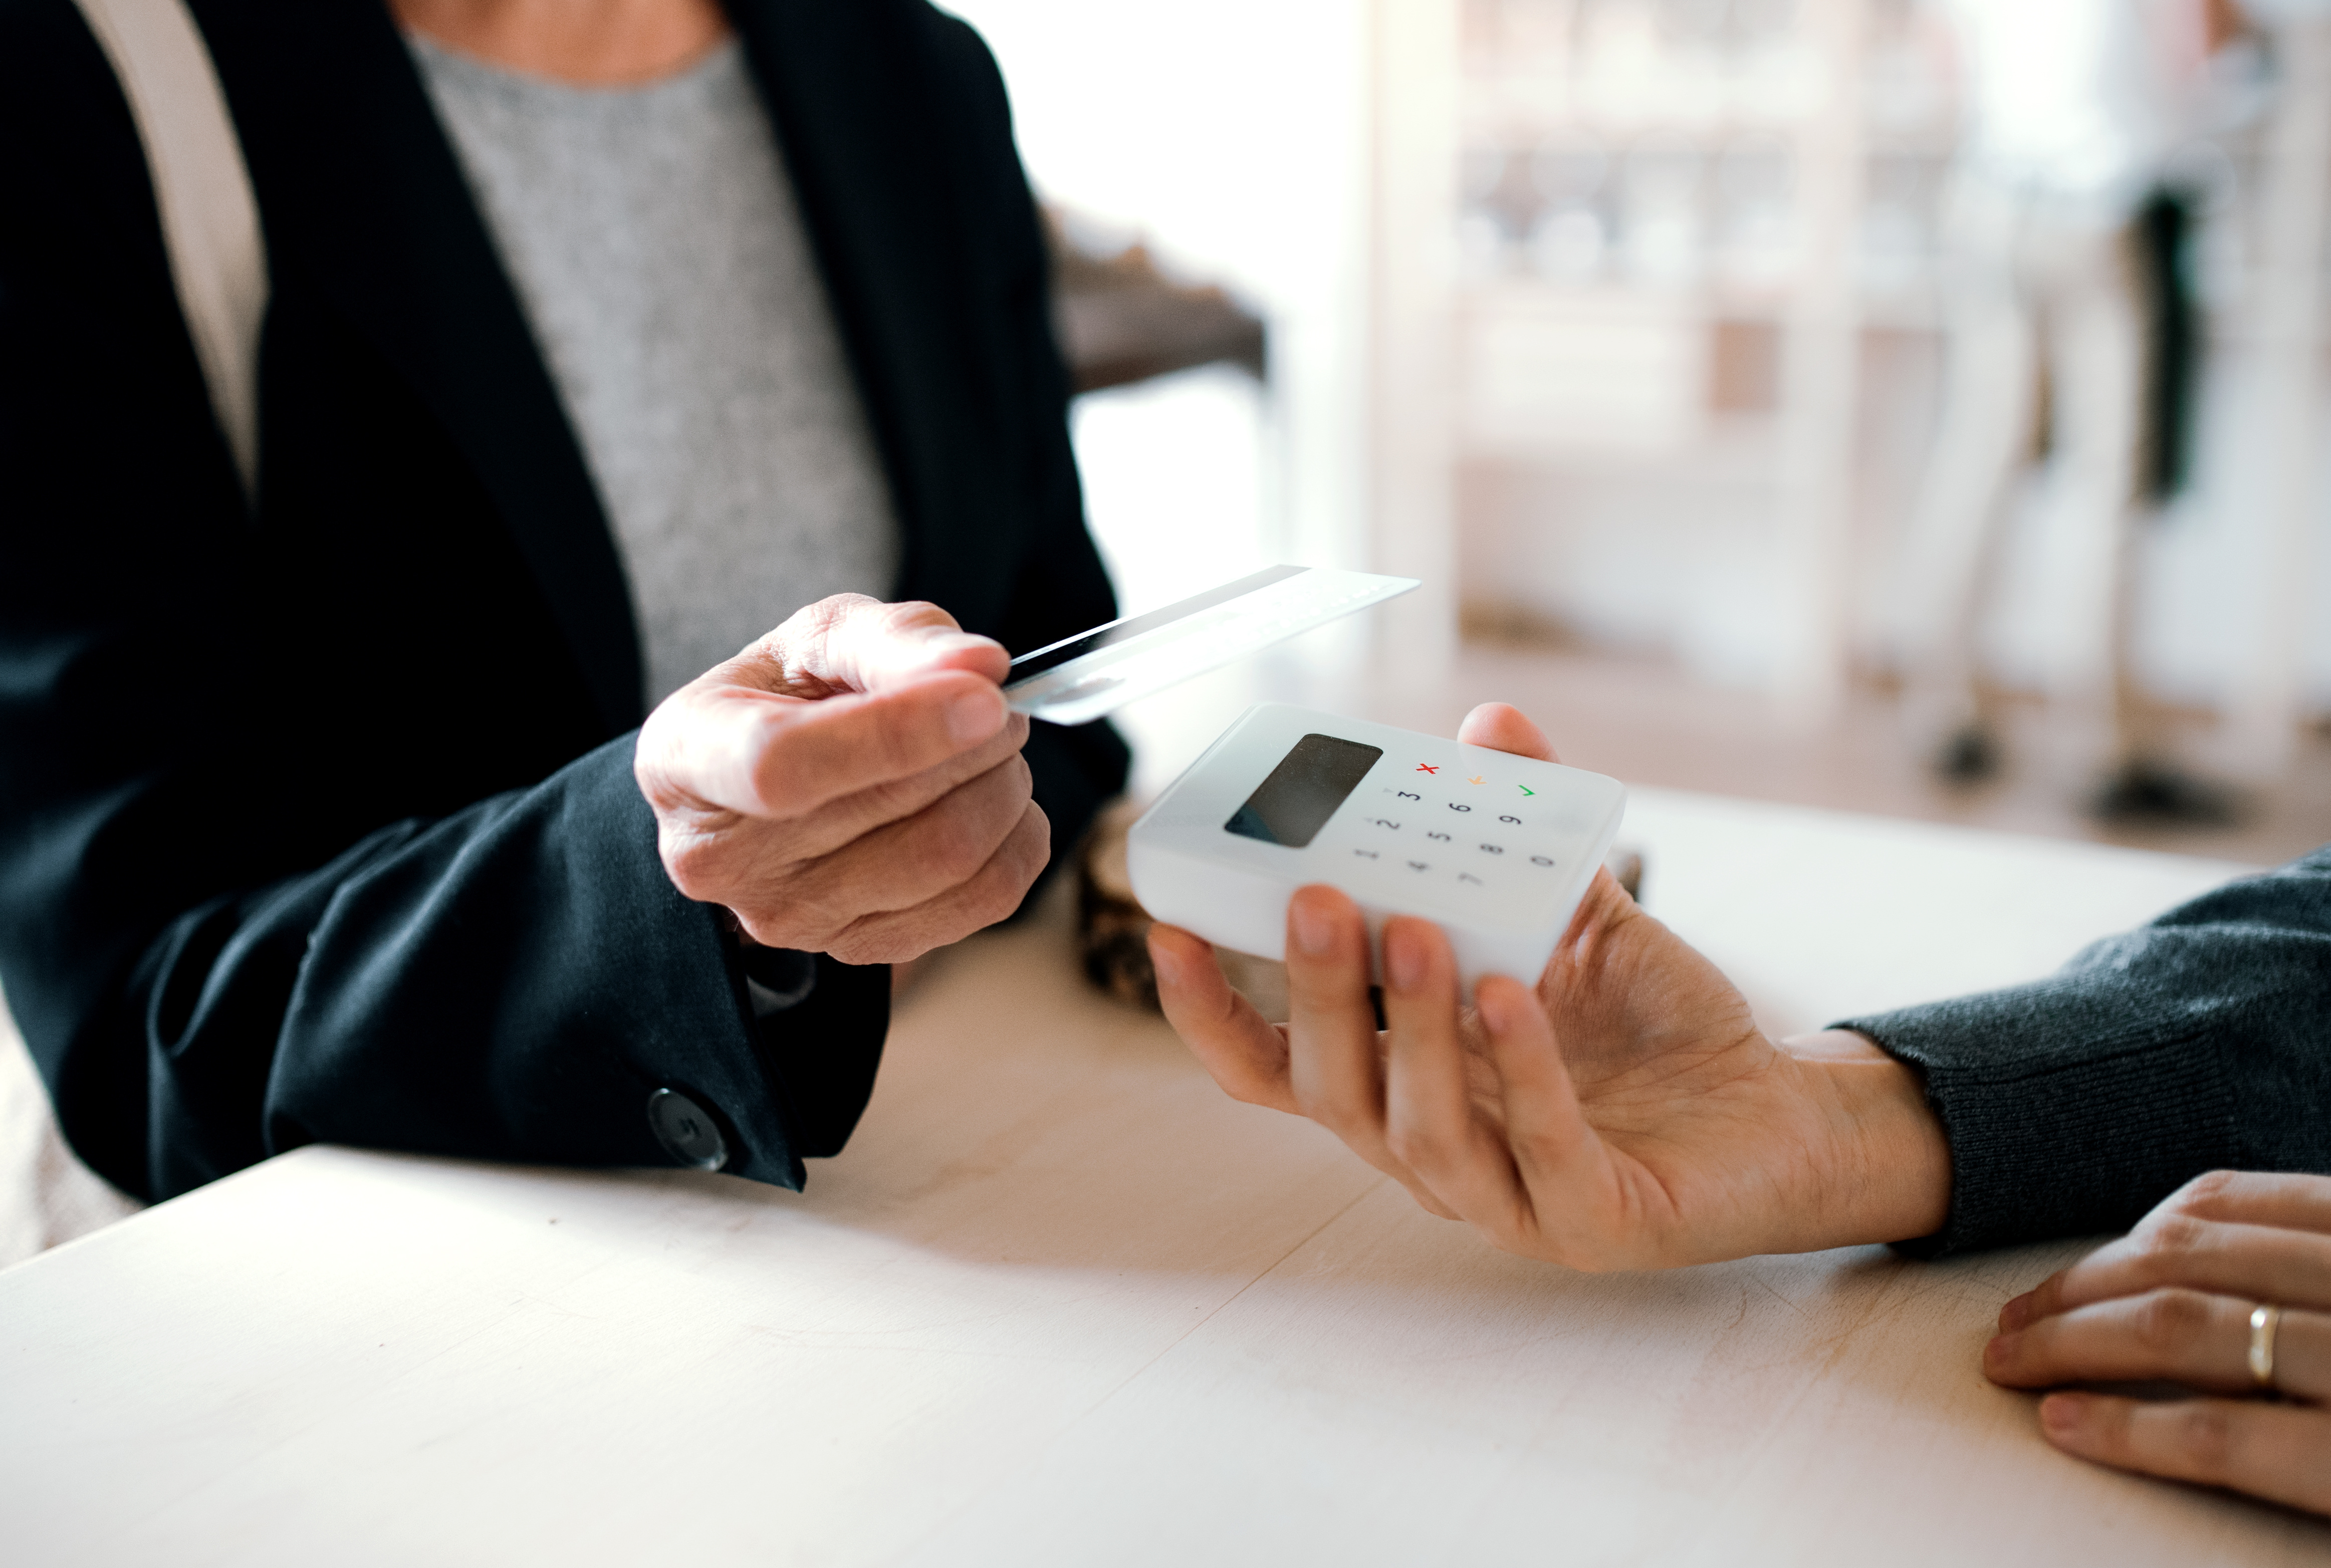 The Rise Of Contactless Payment Systems